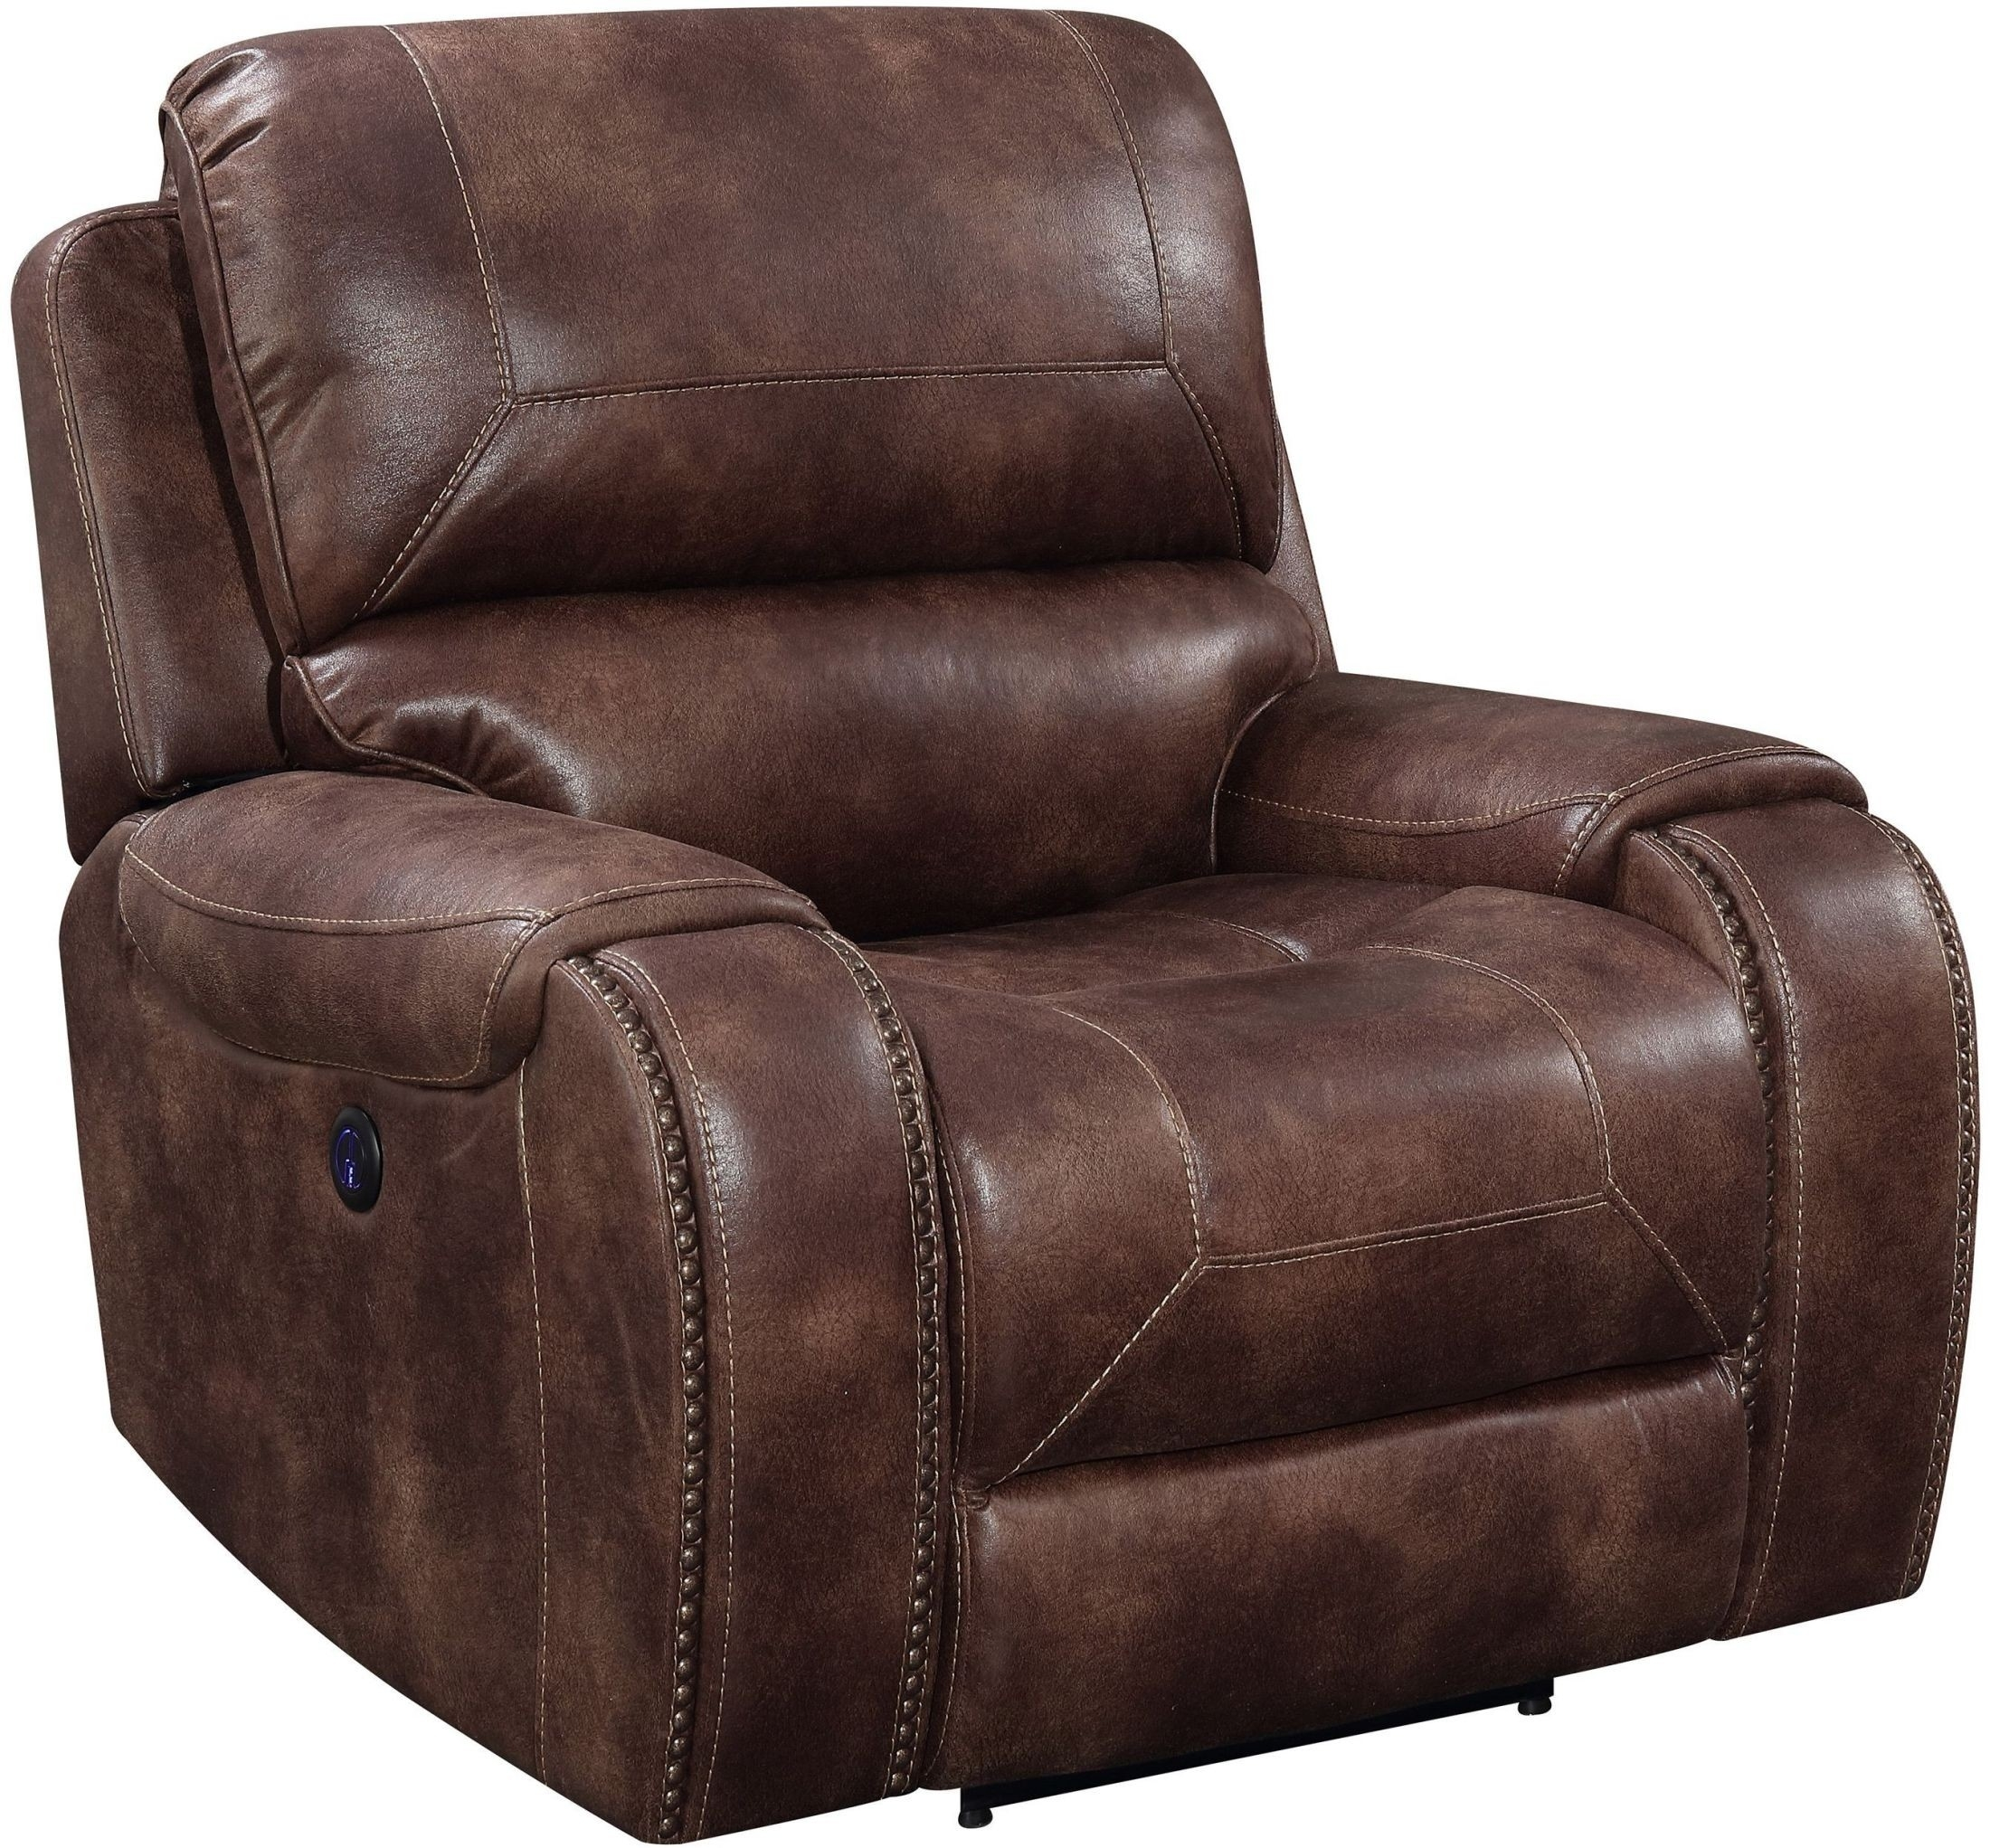 Jennings Waylon Mocha Power Recliner From Prime Resource throughout Waylon 3 Piece Power Reclining Sectionals (Image 14 of 30)